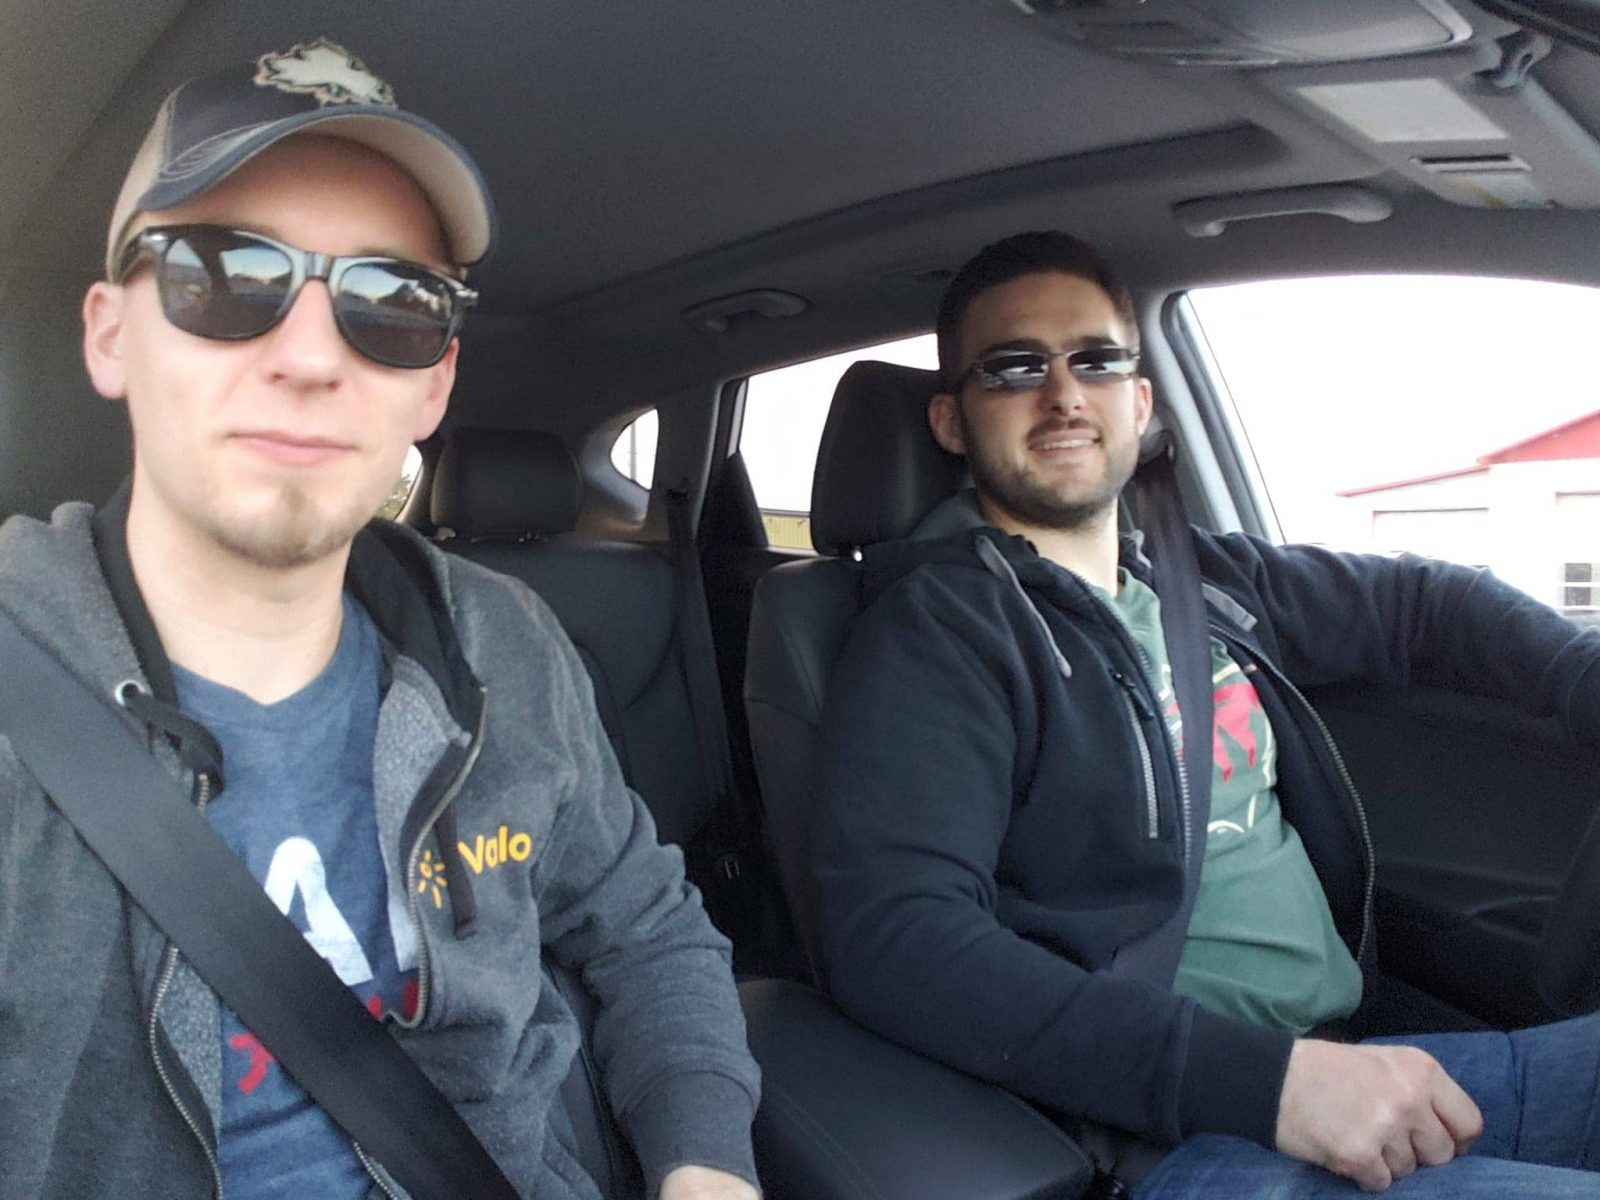 #Roadtrip'ping to Boston for @SPSNewEngland with the one and only @baywet who just landed from his trip to #MWCP18 - what a champ! Really looking forward to the awesome sessions and meeting all the people at #SPSNE tomorrow! 😁